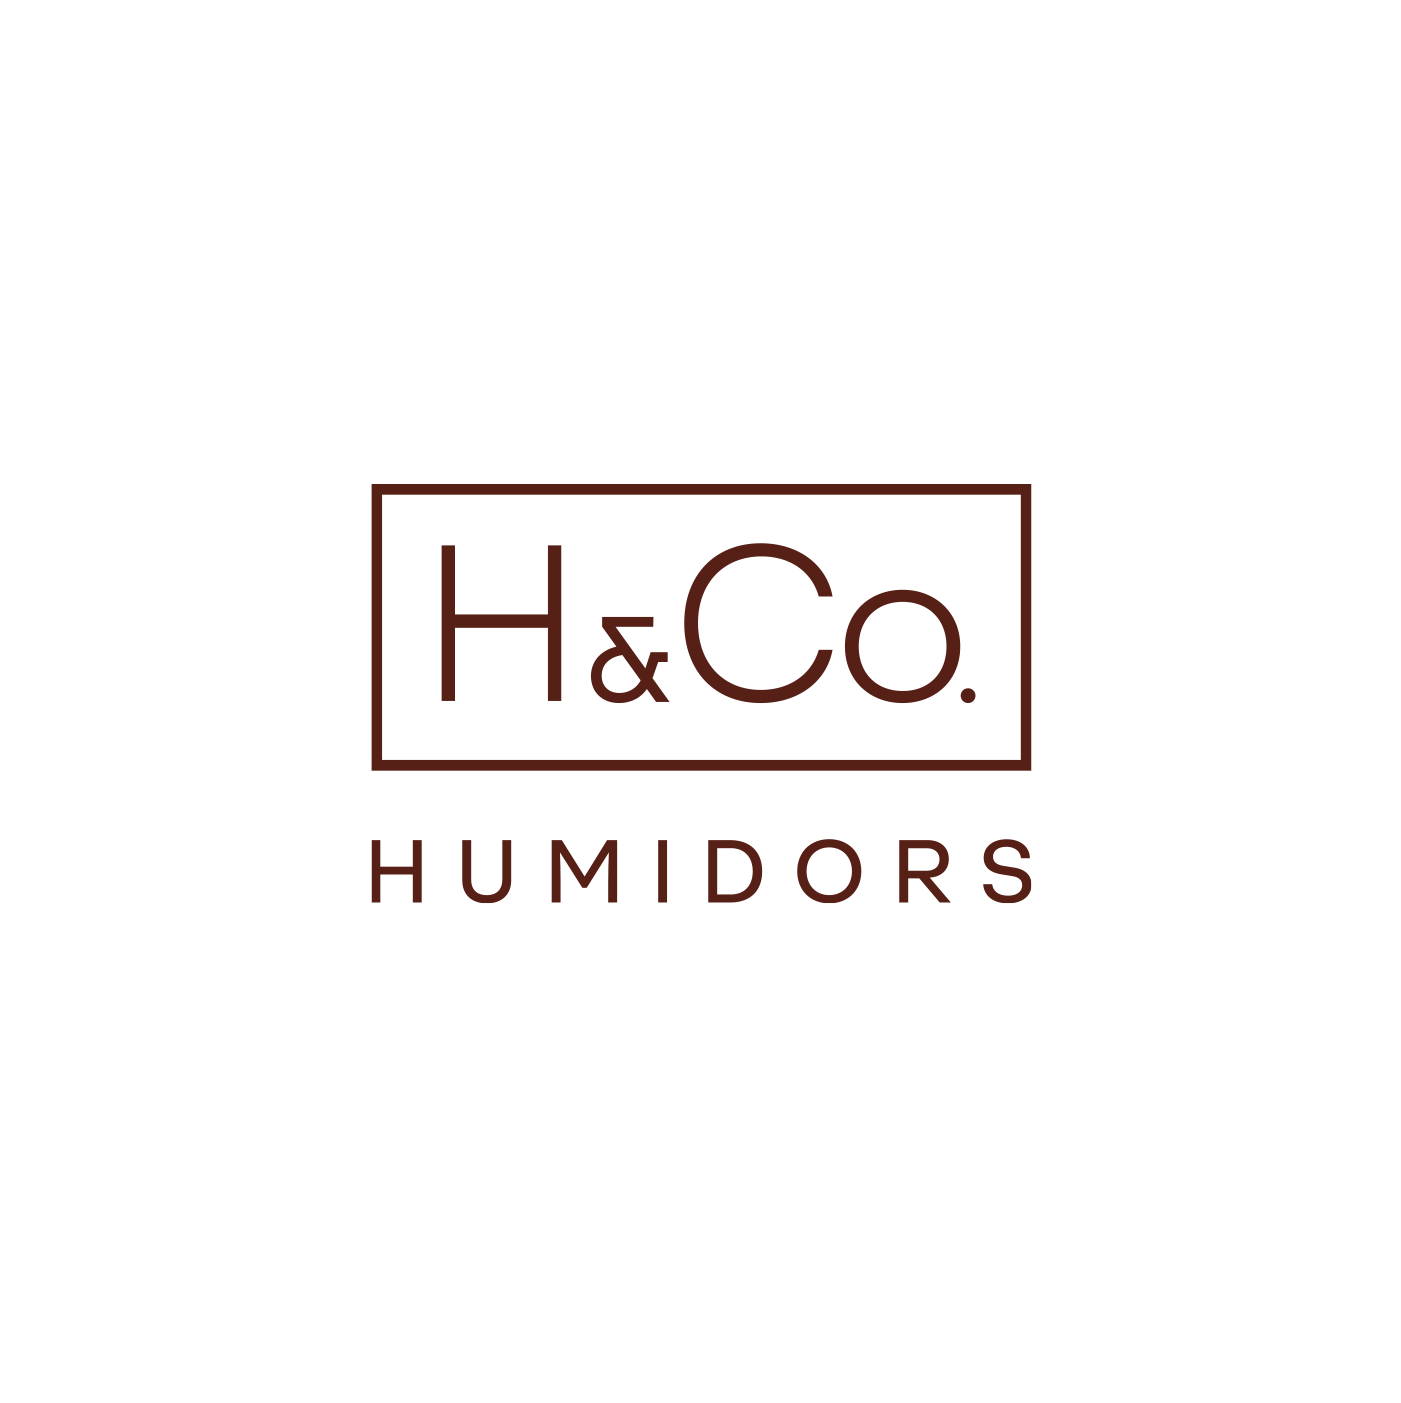 H&Co-01.png